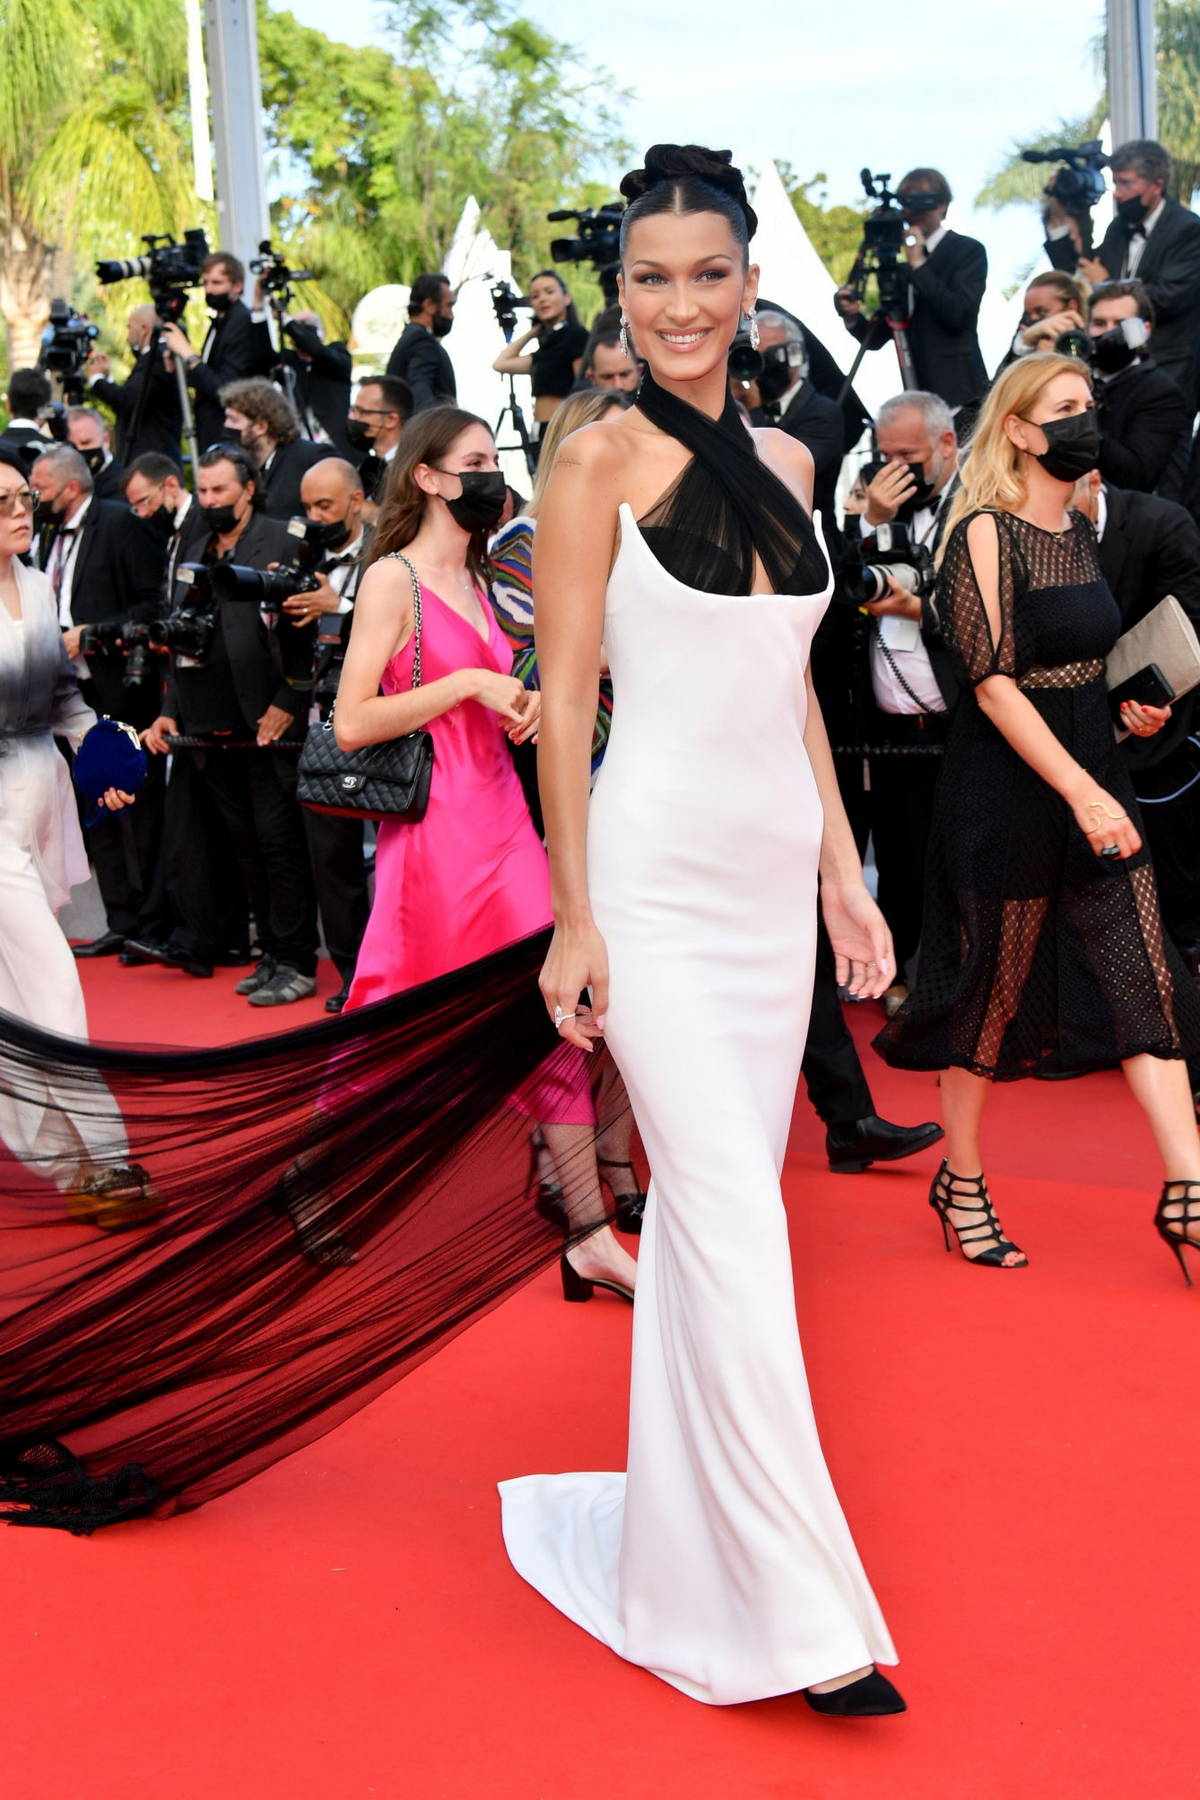 Bella Hadid attends the 'Annette' screening and opening ceremony during the 74th annual Cannes Film Festival in Cannes, France